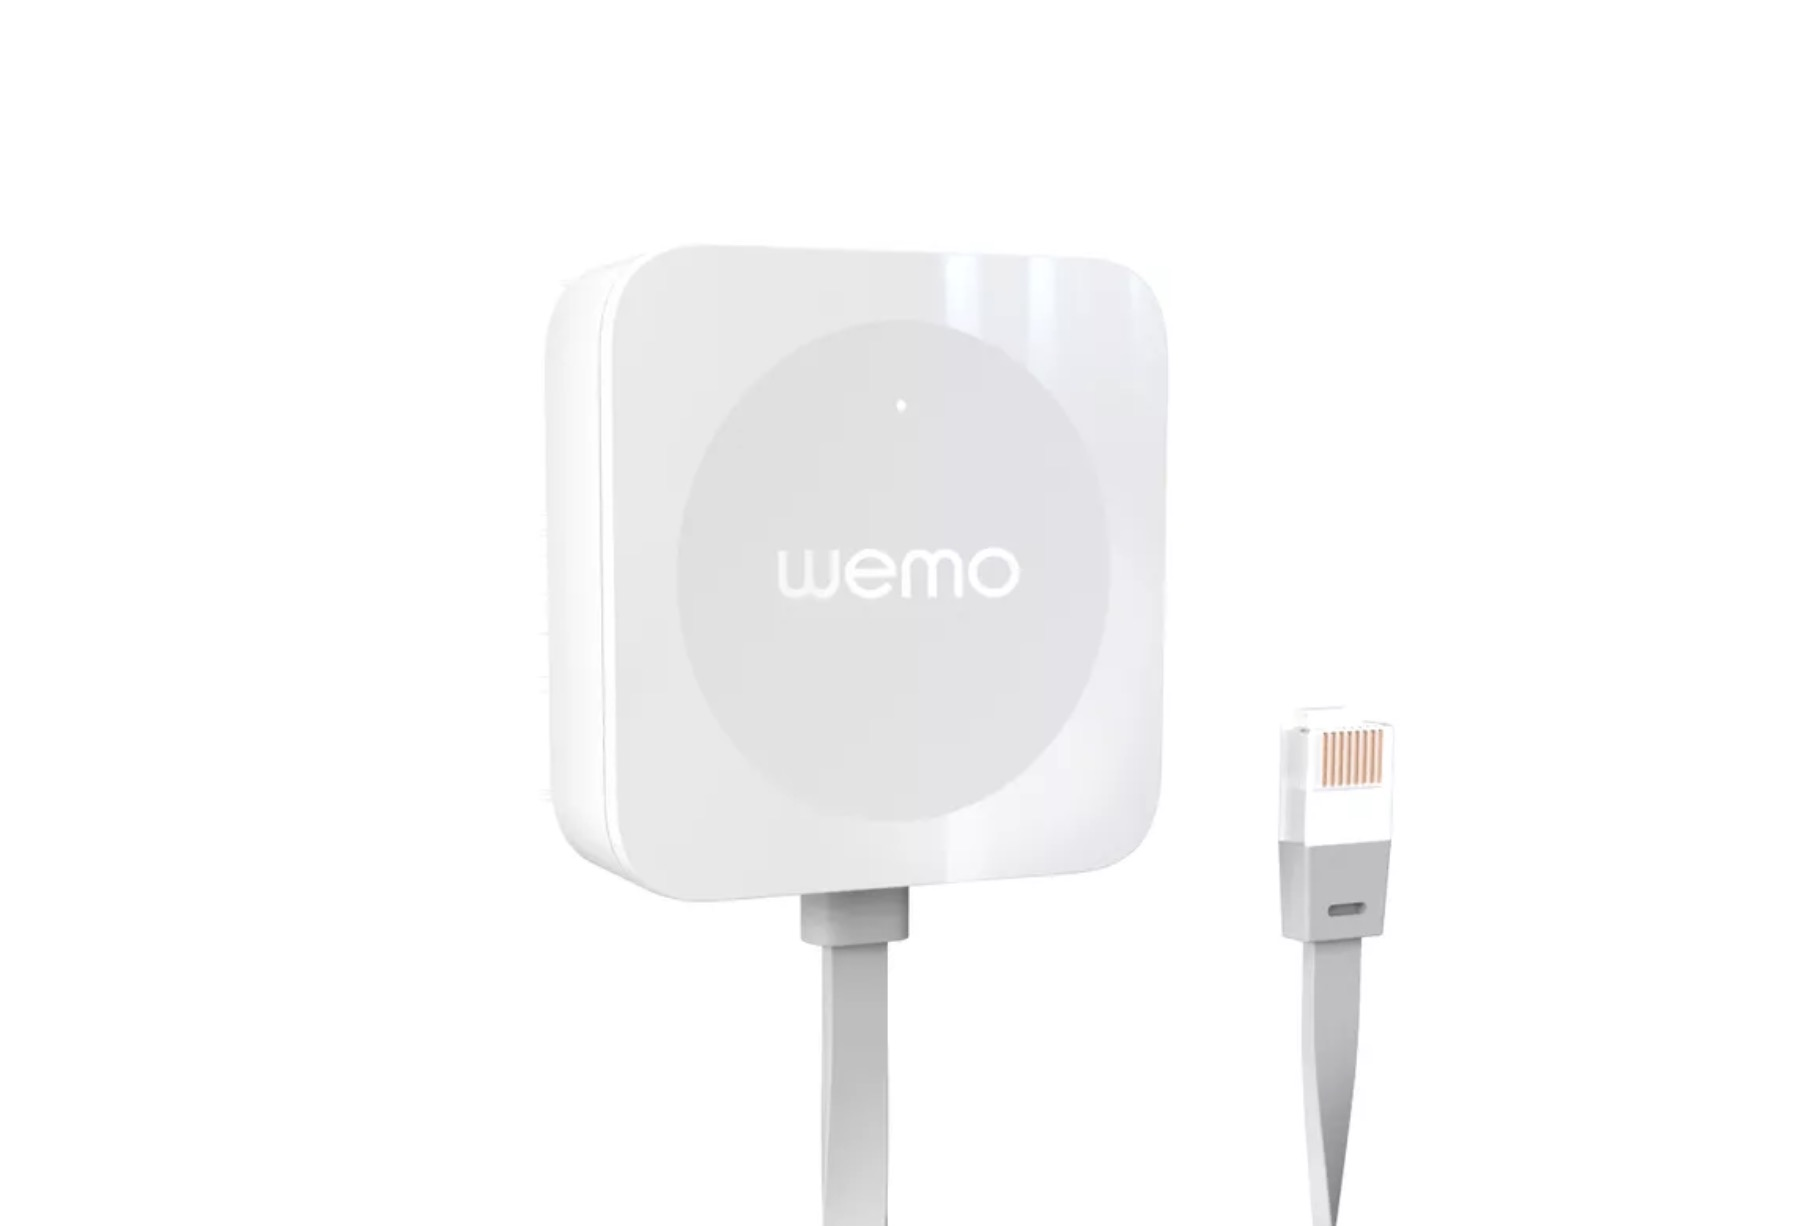 Bring Wemo into HomeKit and add Siri control with the Bridge.